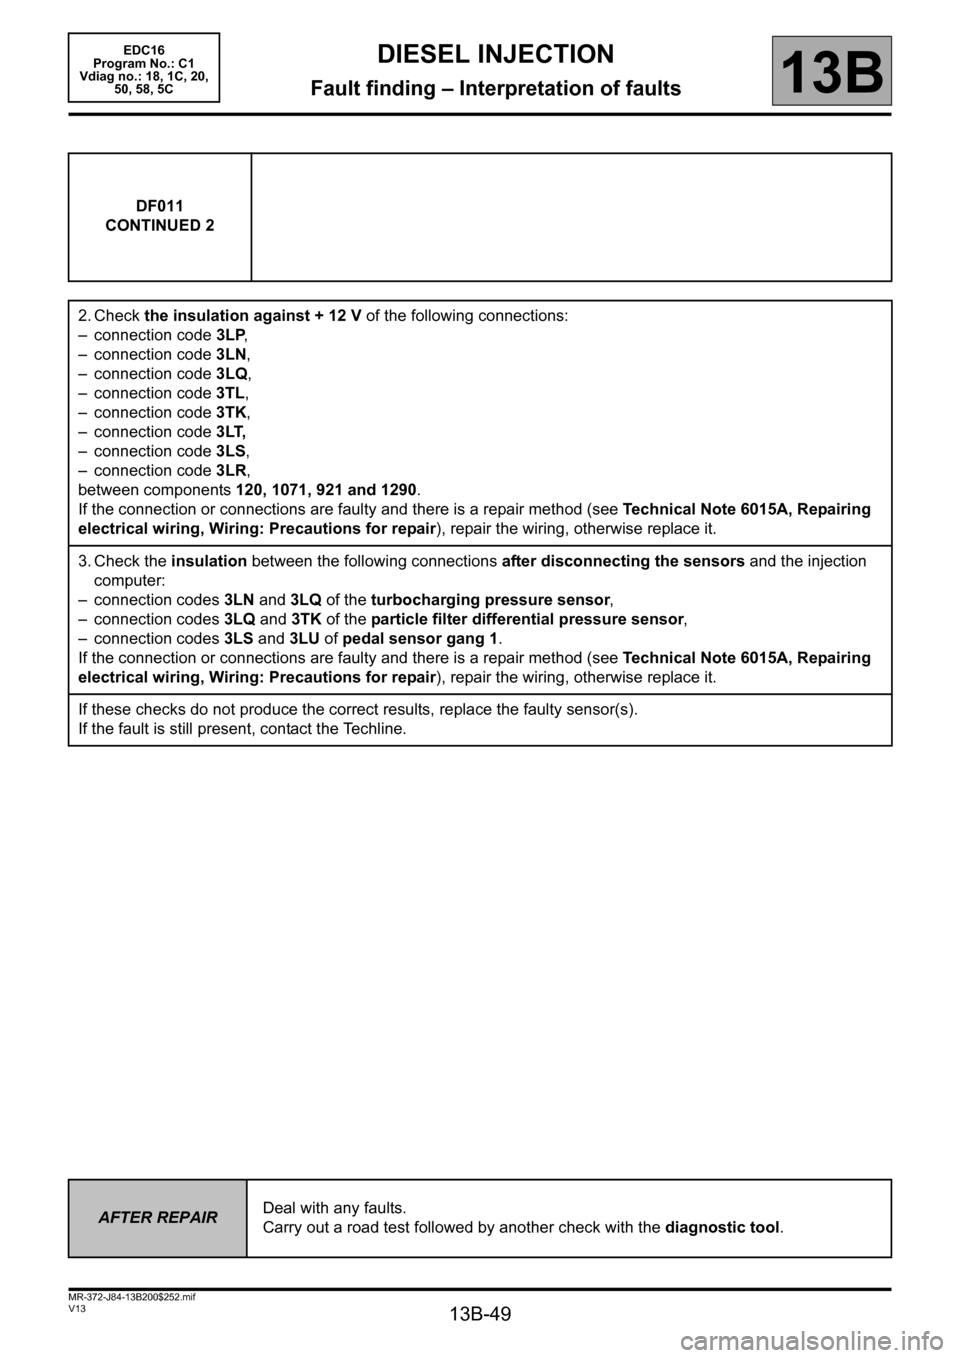 RENAULT SCENIC 2011 J95 / 3.G Engine And Peripherals EDC16 Workshop Manual, Page 49